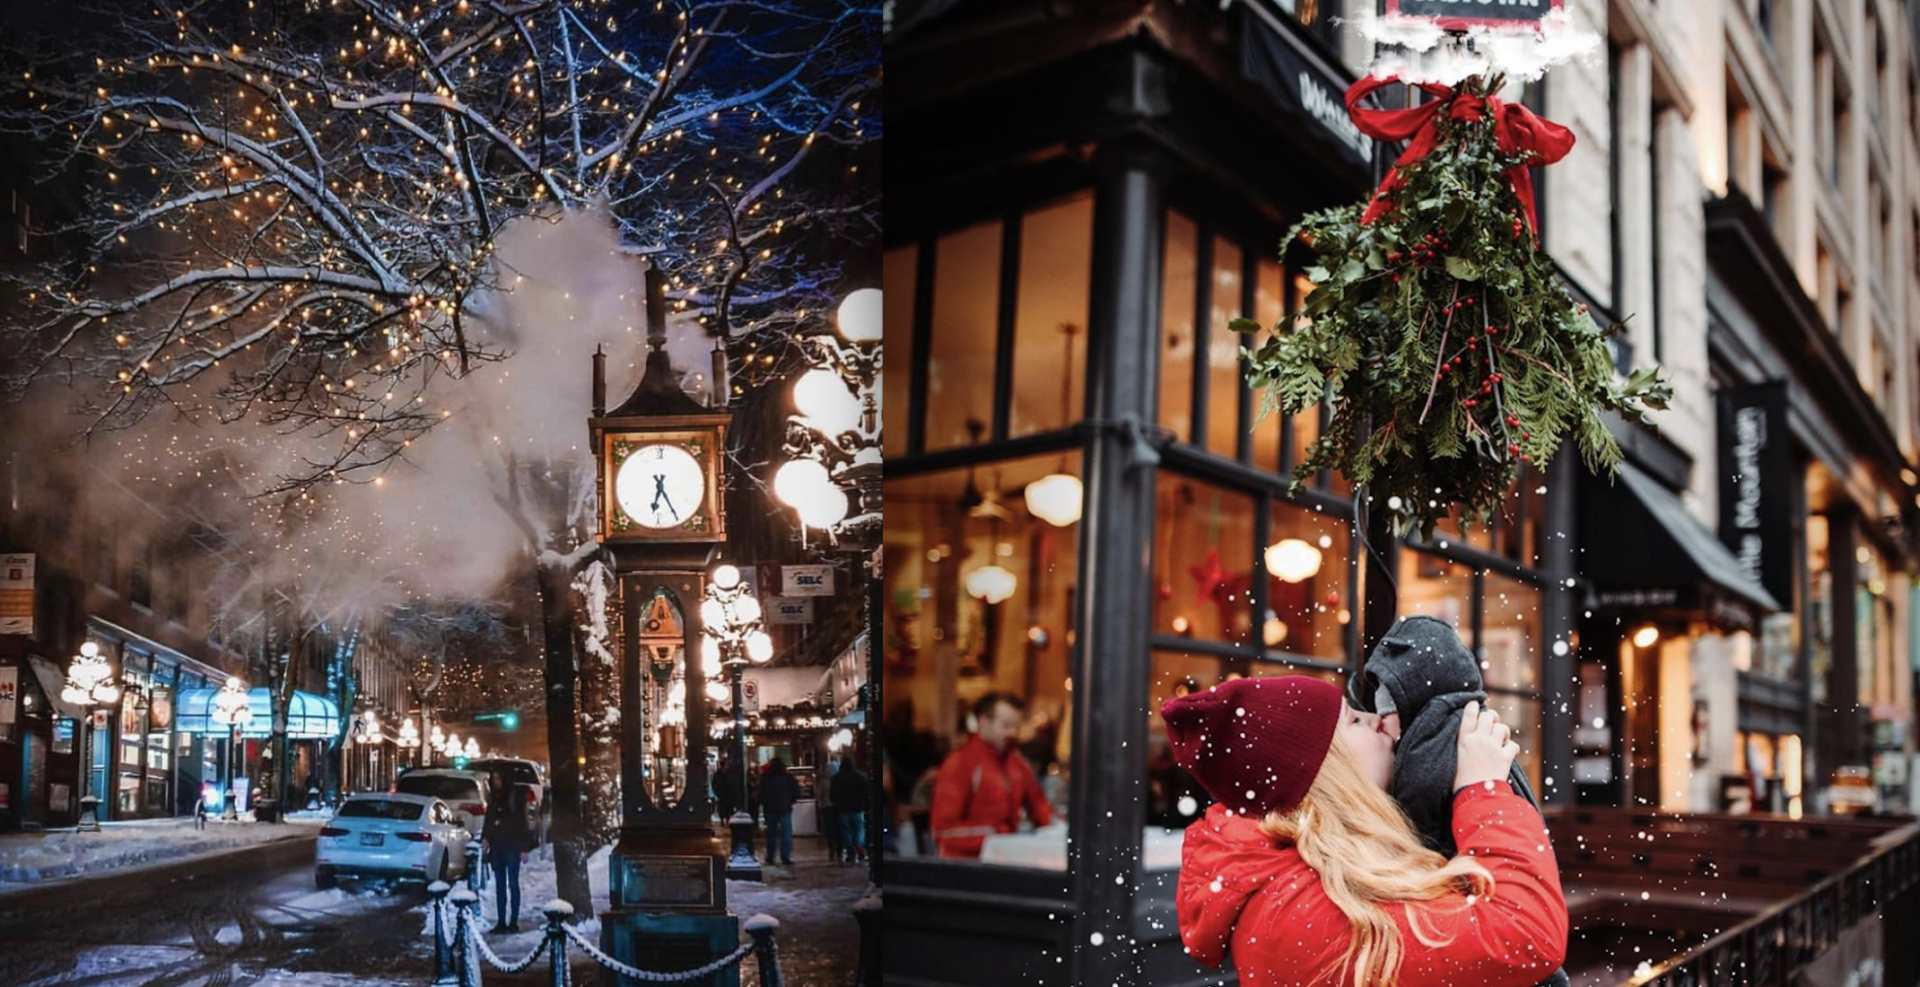 Gastown will be filled with carolling, holiday projections, and mistletoe booths this month